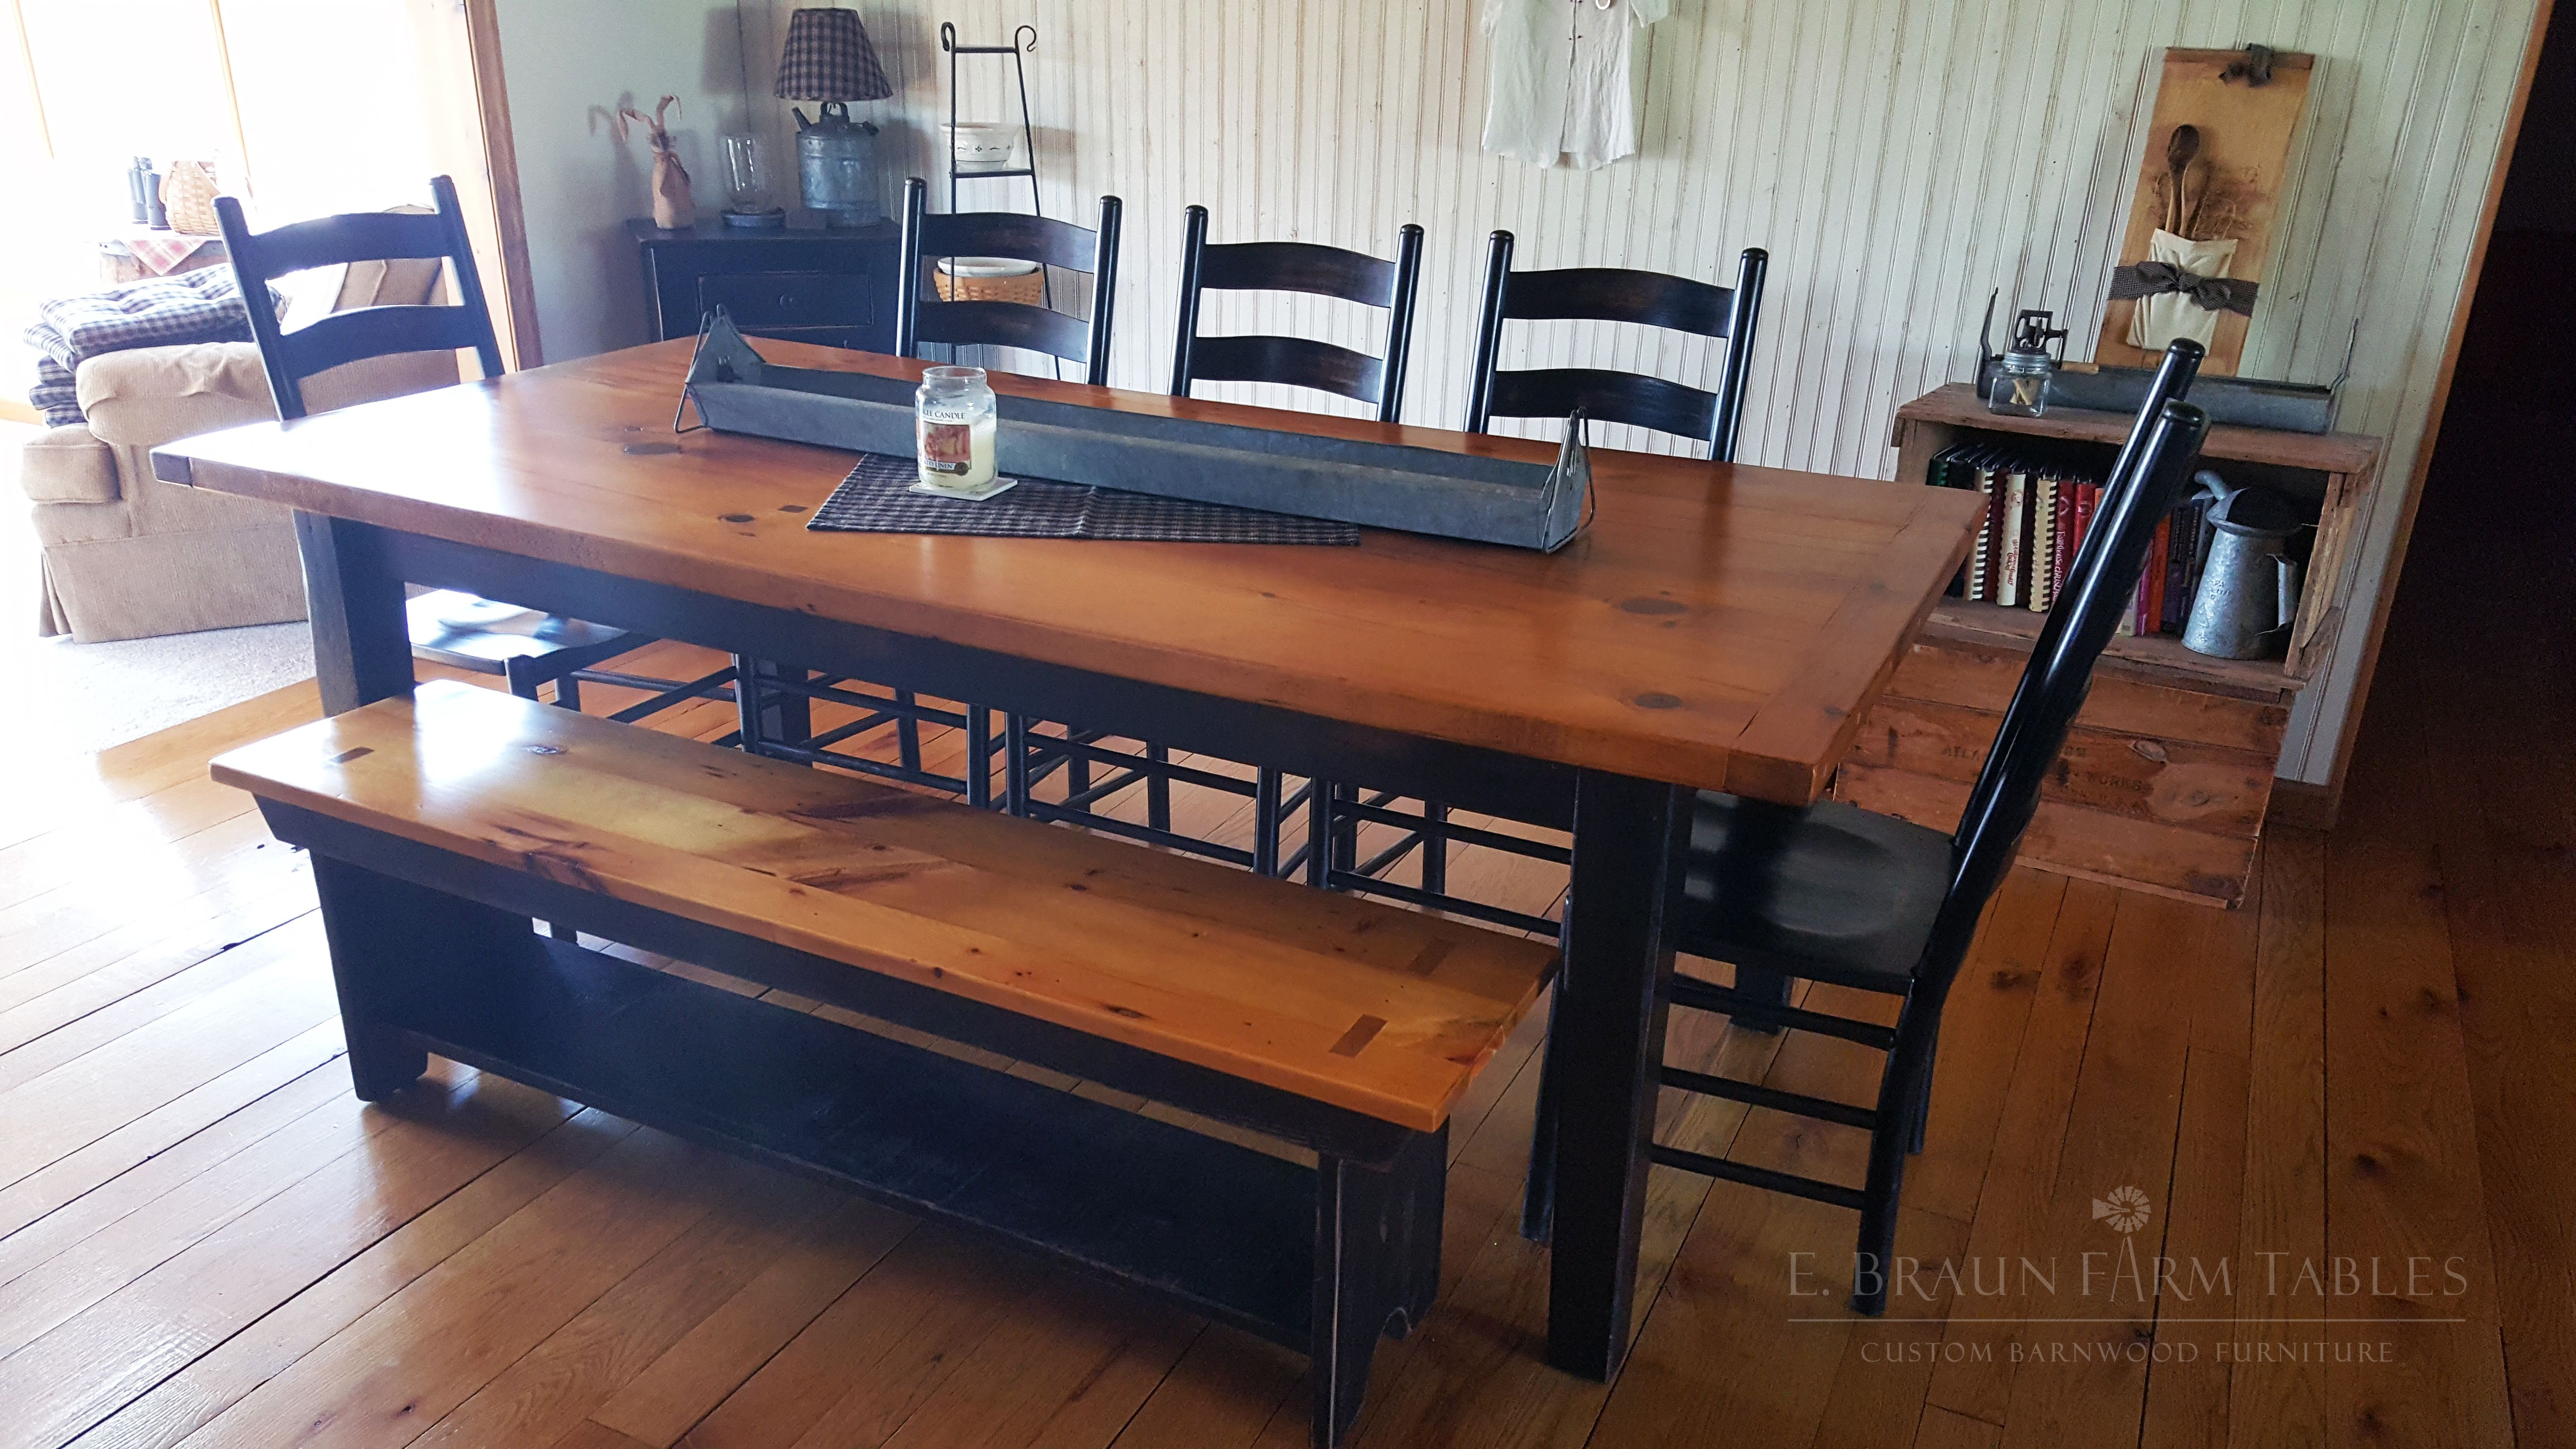 perfect farm table for this lovely farmhouse made using reclaimed